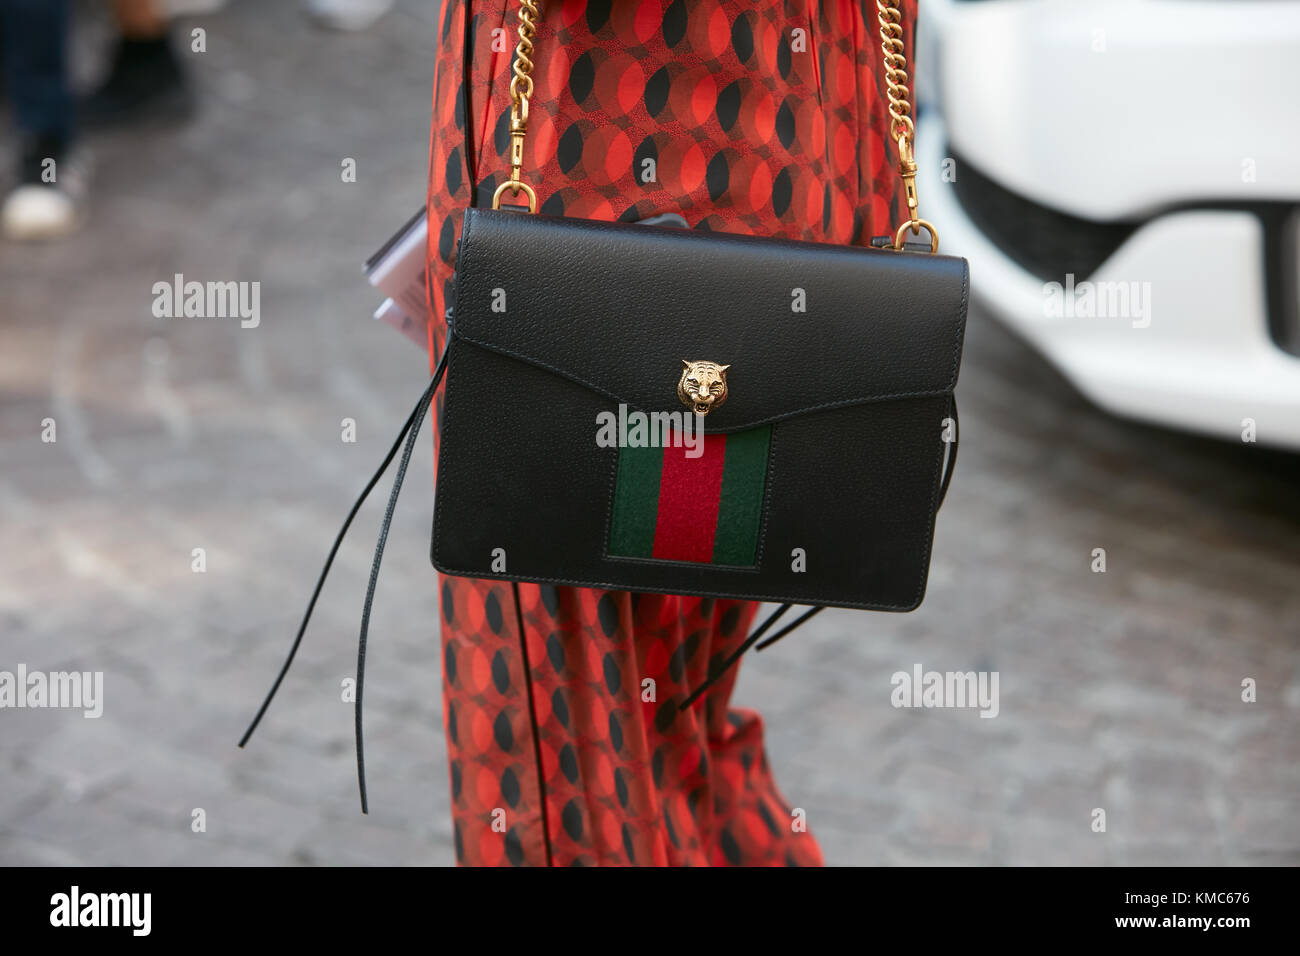 ee2ed2eaeda9 MILAN - SEPTEMBER 23: Woman with black leather Gucci bag with red and green  stripes and golden lion head before Antonio Marras fashion show, Milan Fas